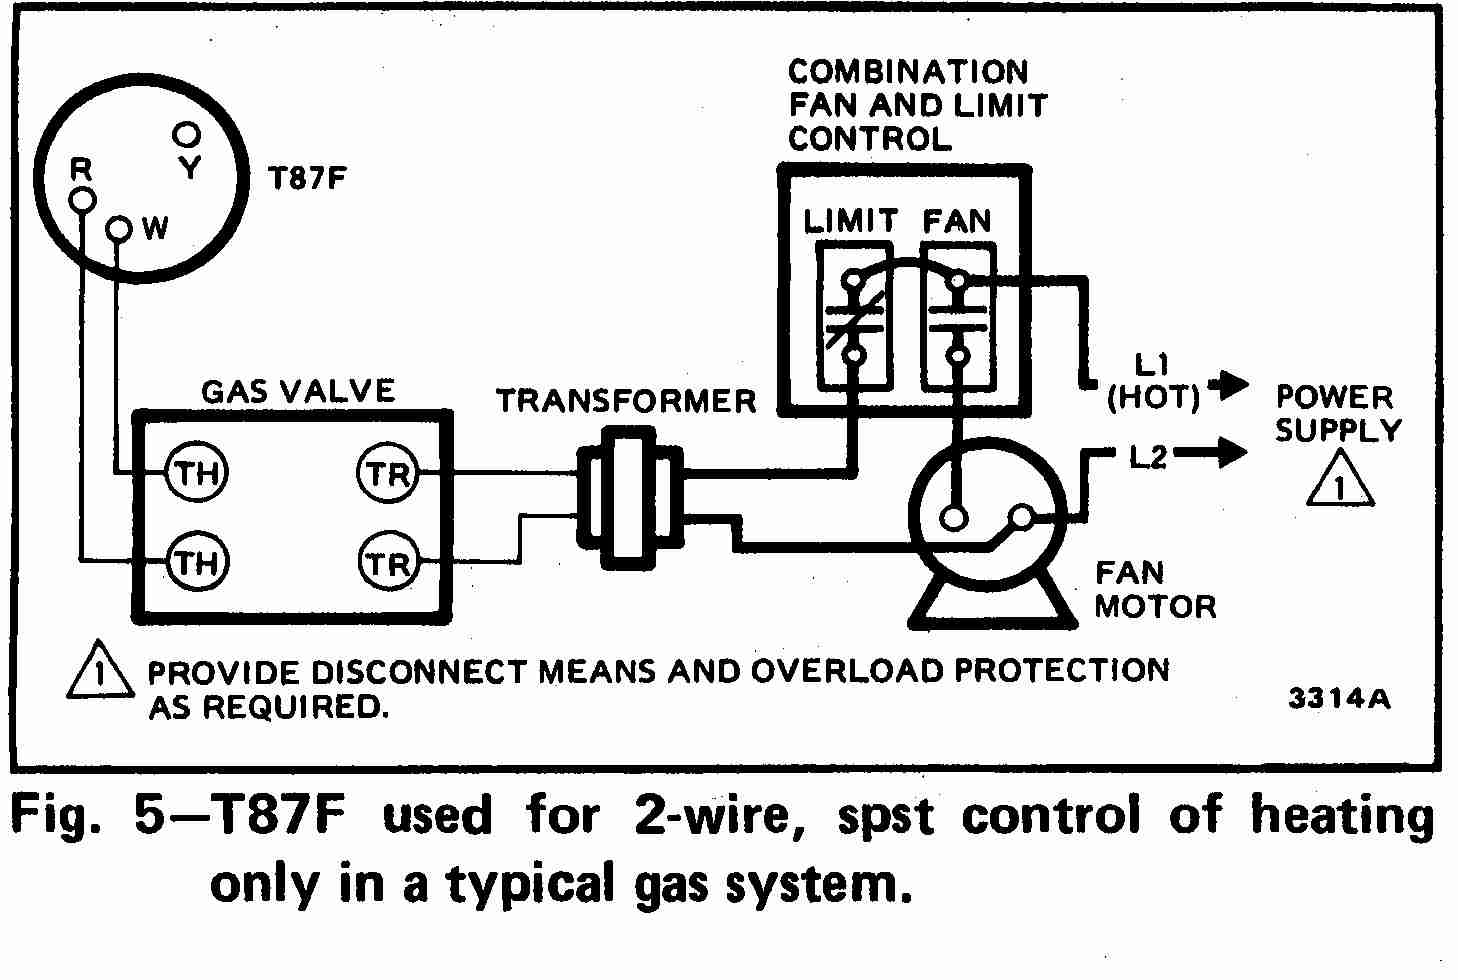 TT_T87F_0002_2Wg_DJF room thermostat wiring diagrams for hvac systems wiring diagram for ac thermostat at panicattacktreatment.co